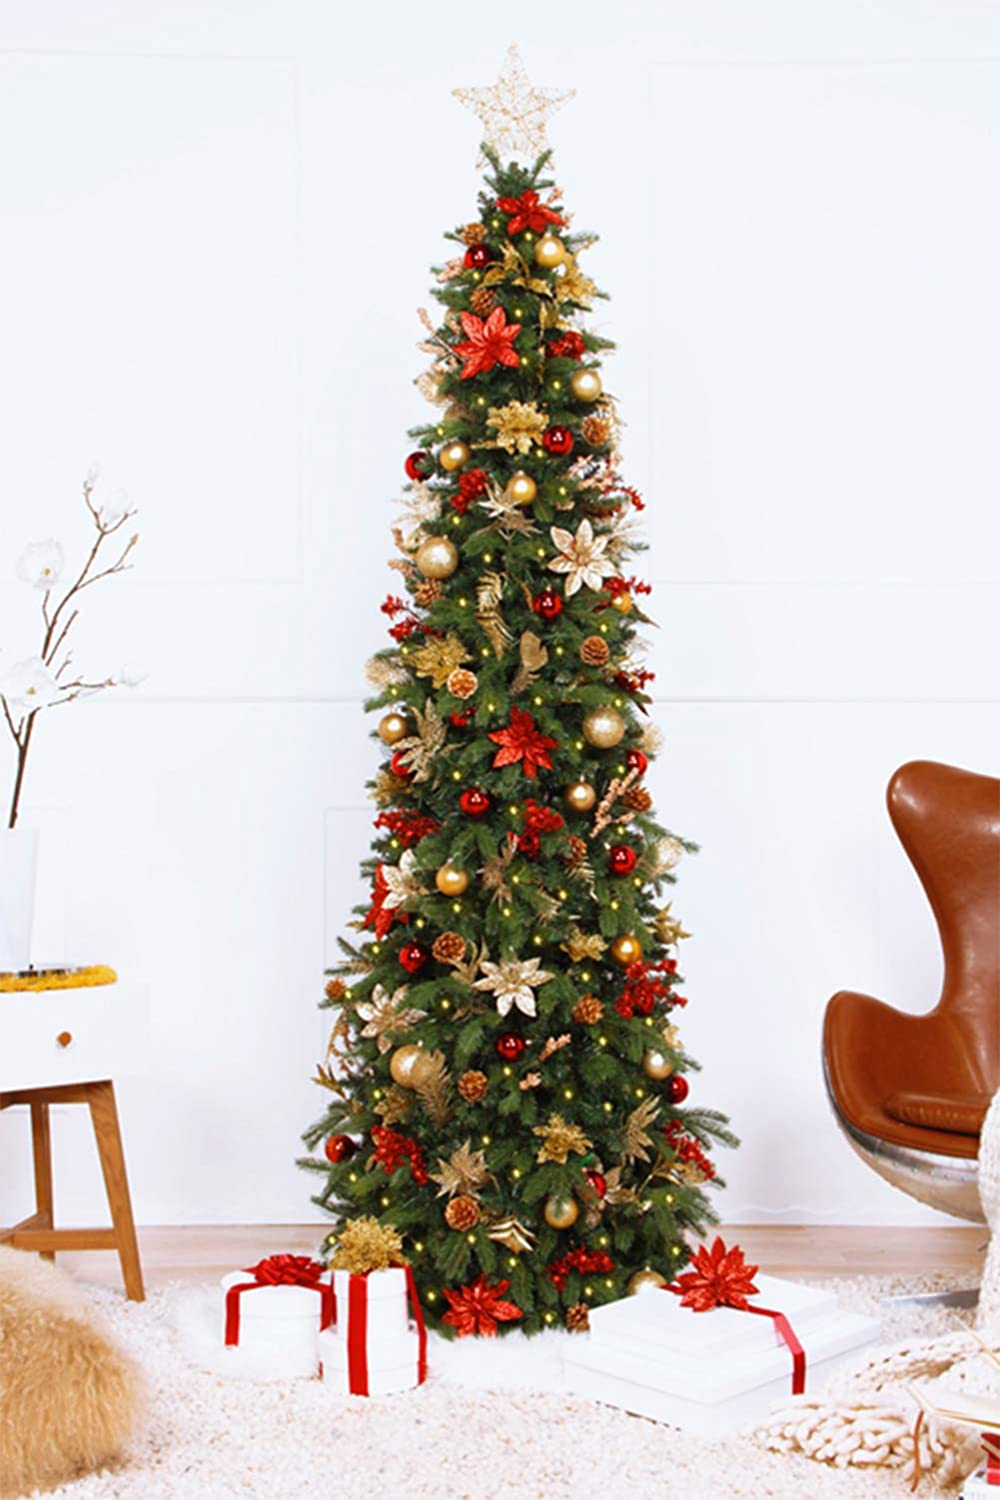 Christmas Tree Setup.Easy Treezy Prelit Christmas Tree Easy Setup Storage In 60 Seconds 5 5ft Realistic Natural Douglas Fir Pre Lit Artificial Tree With Led Lights